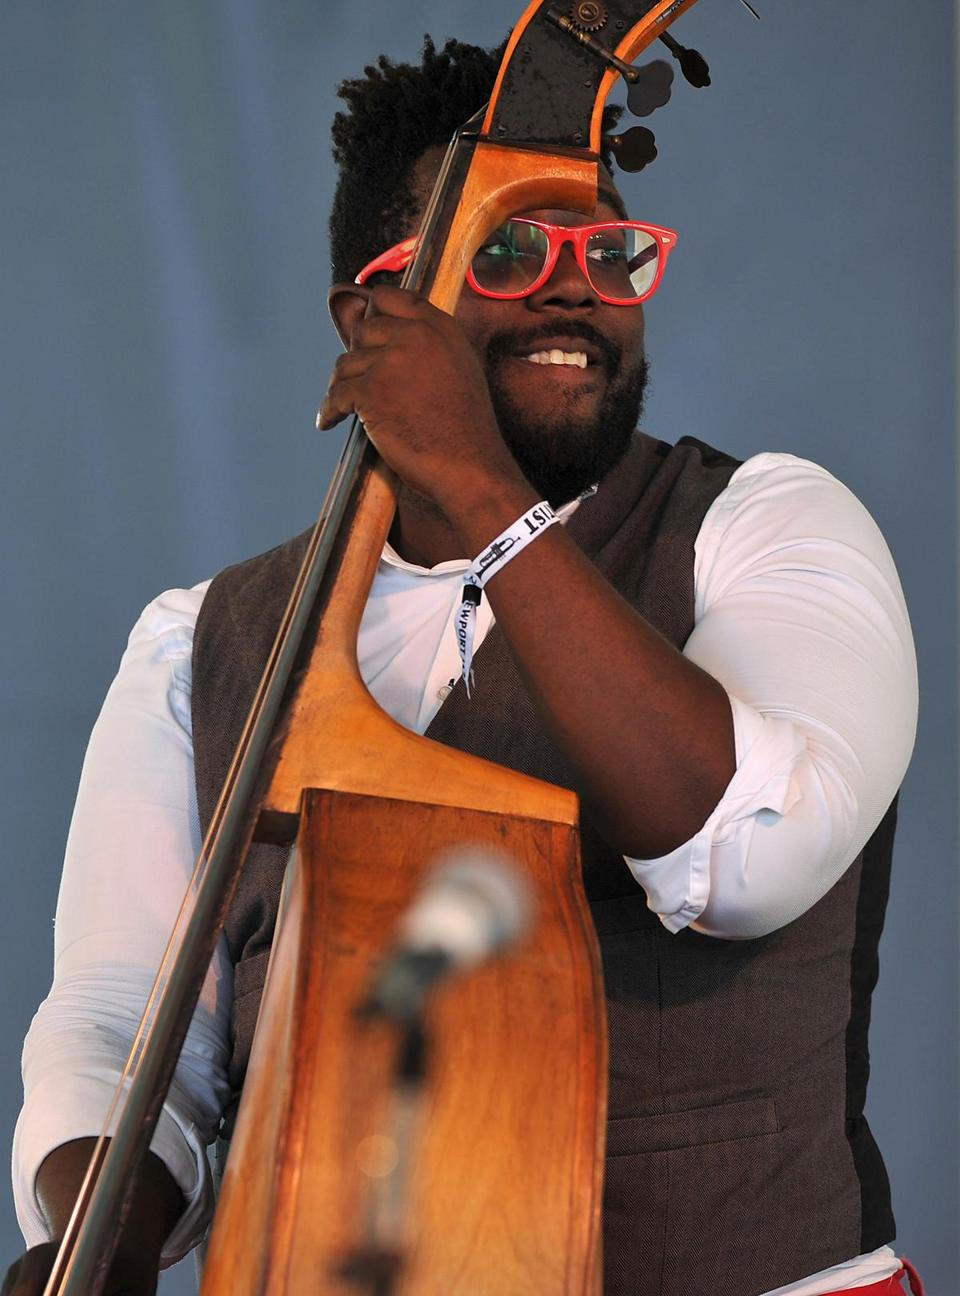 Bassist Solomon Dorsey performs with vocalist Jos? James at the Newport Jazz Festival in Newport, Rhode Island, on August 1, 2015. AFP PHOTO/ Eva HAMBACH (Photo credit should read EVA HAMBACH/AFP/Getty Images)